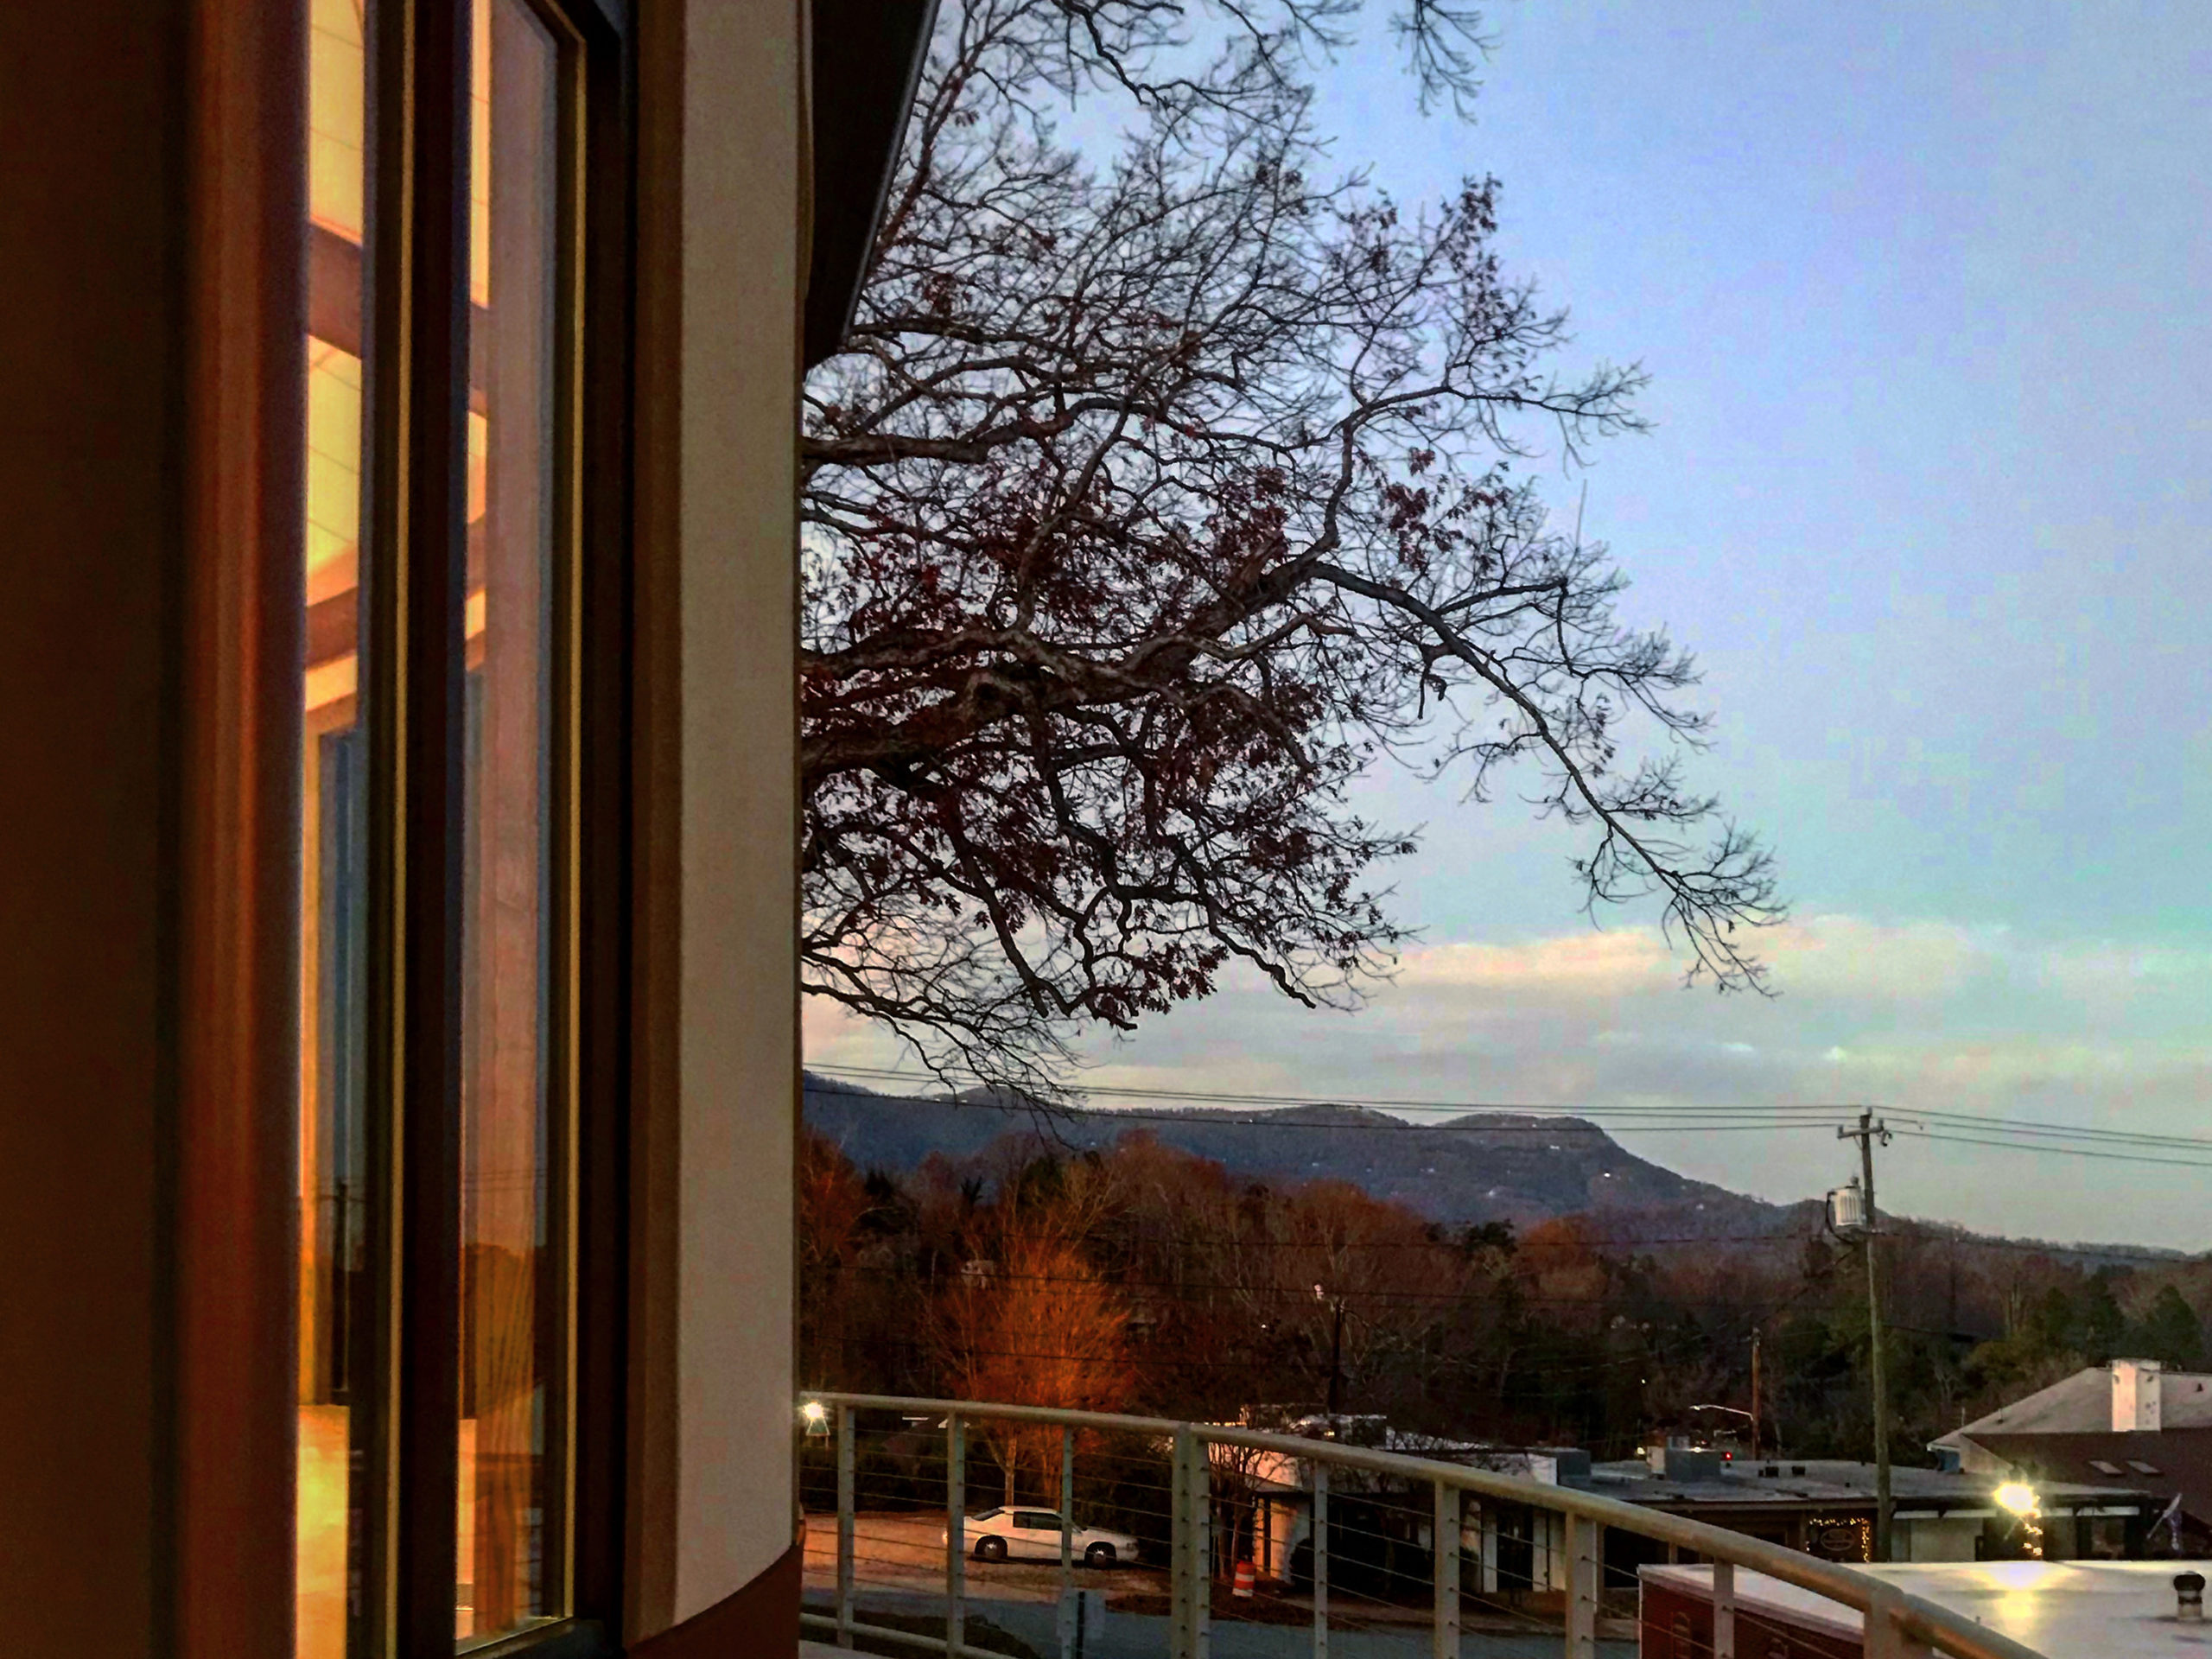 View from the curved addition westward toward the mountains.